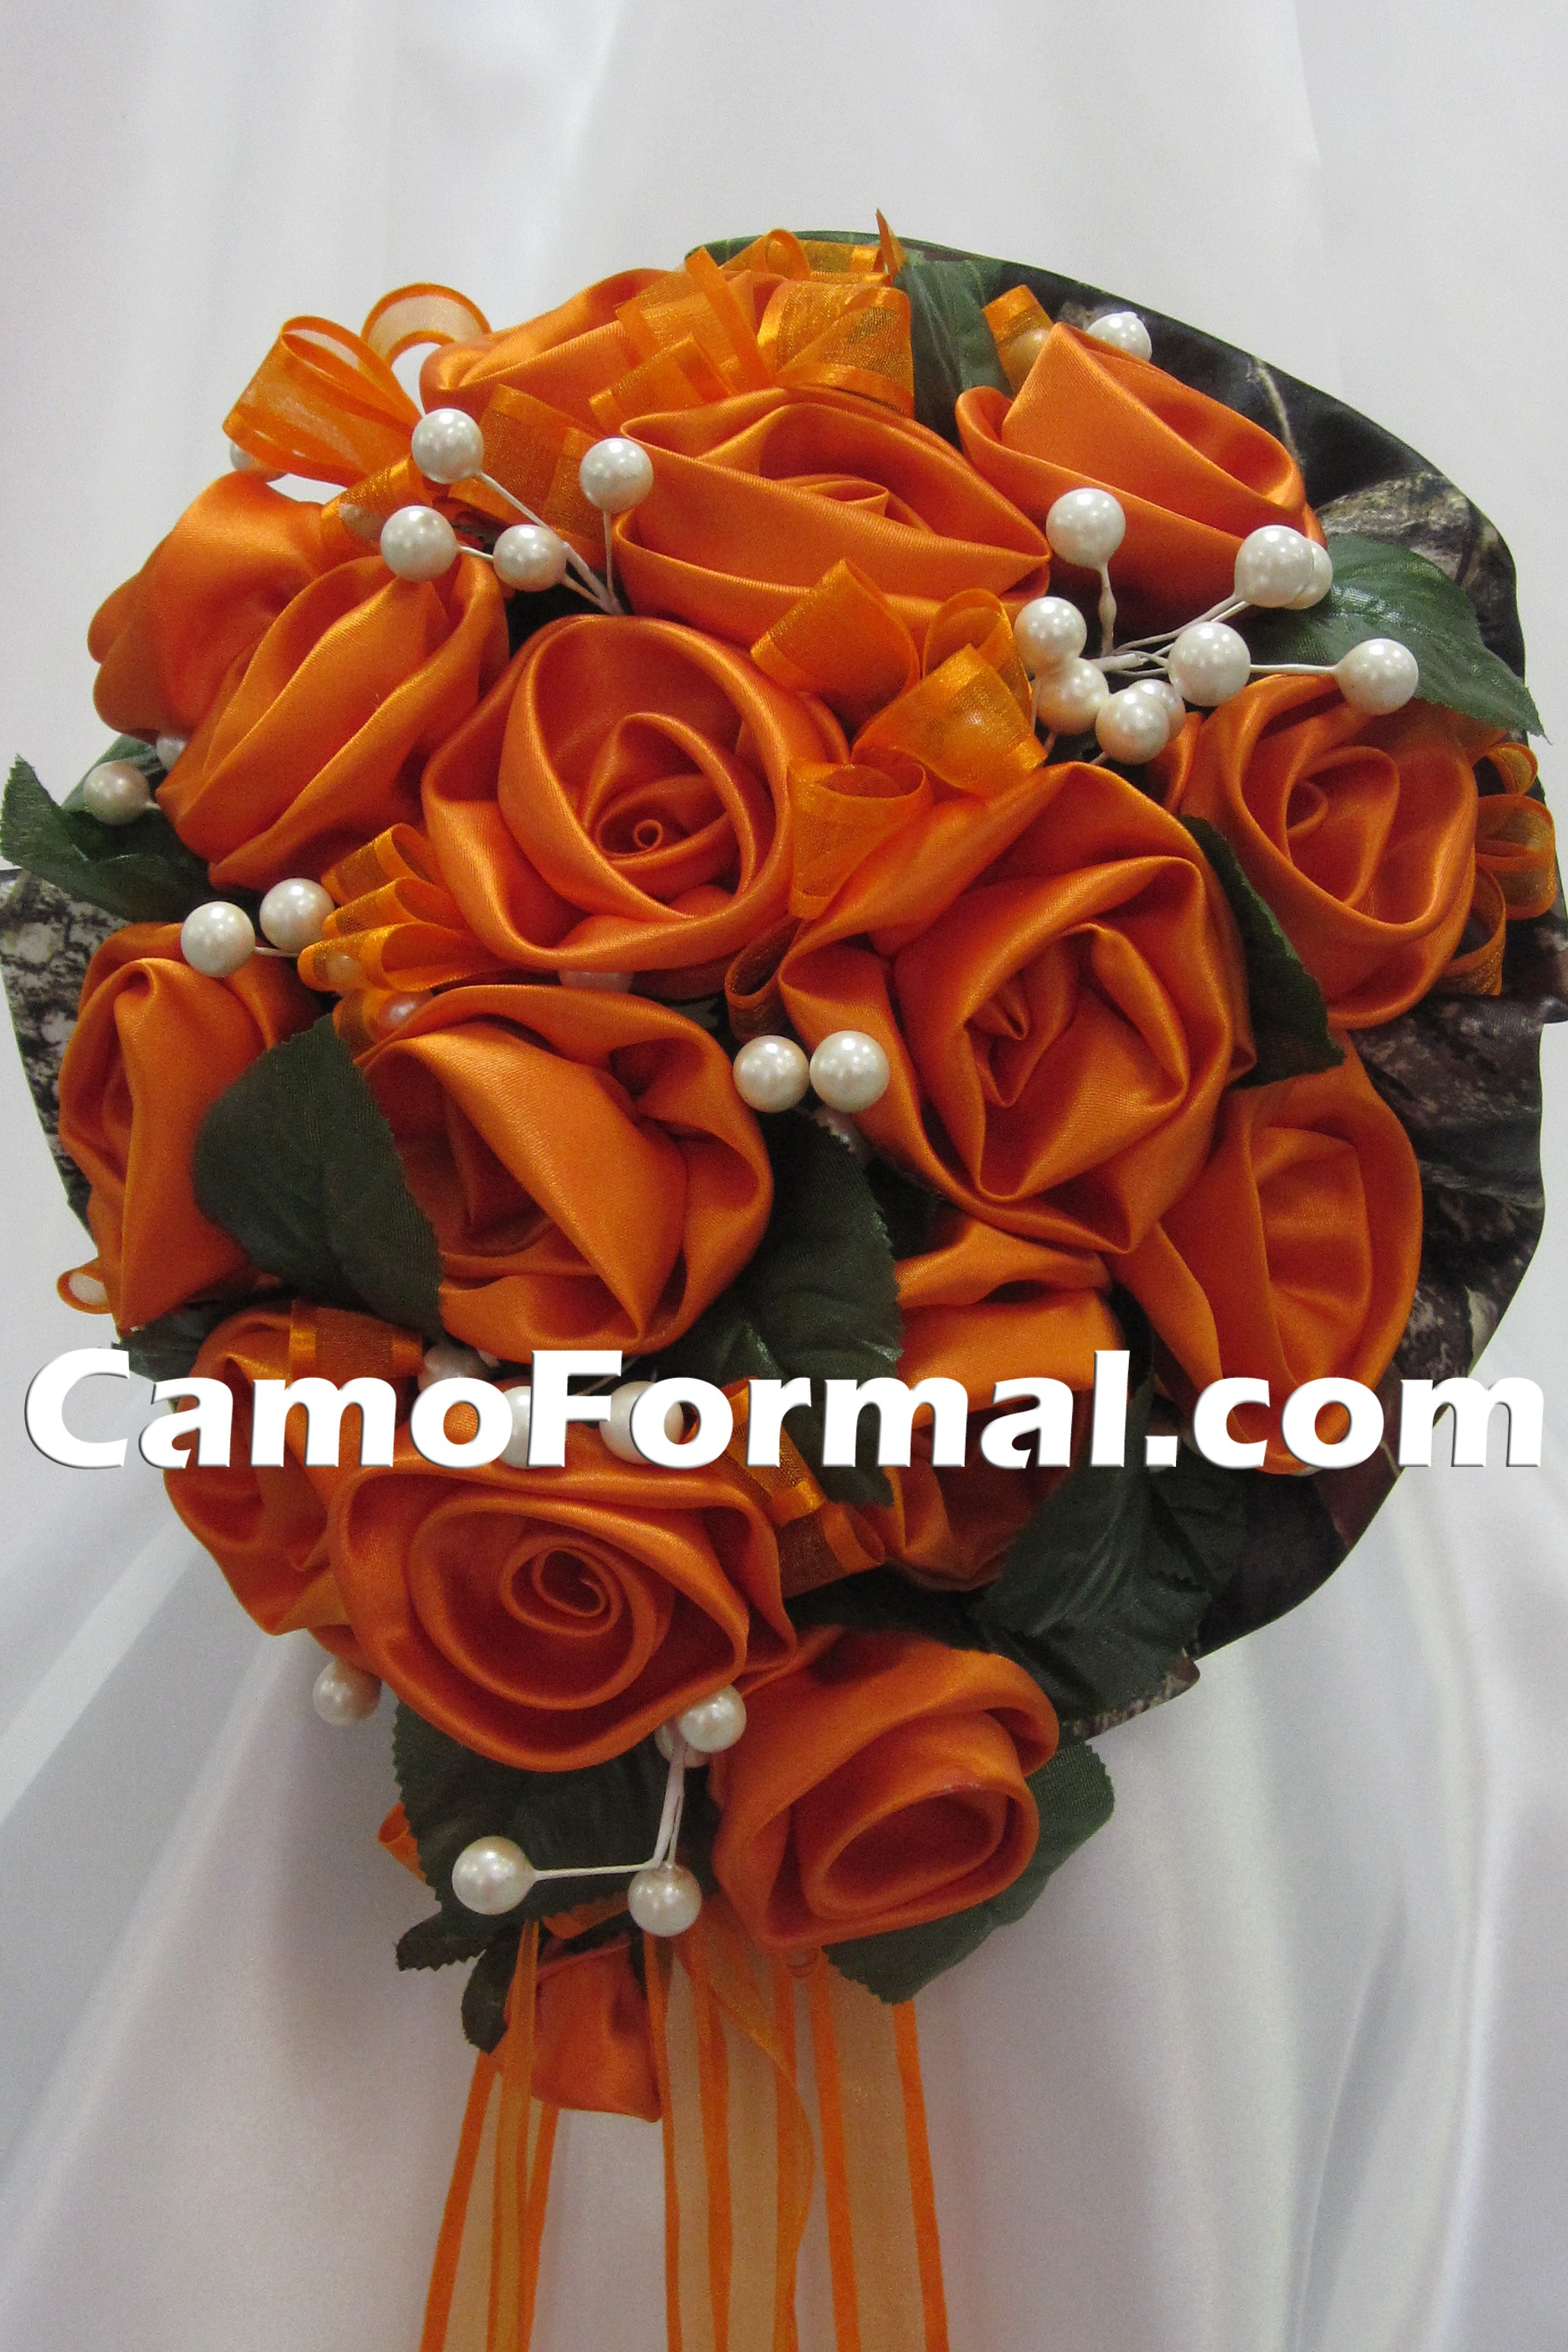 Pin Camouflage Prom Wedding Home ing Mossy Oak Attire